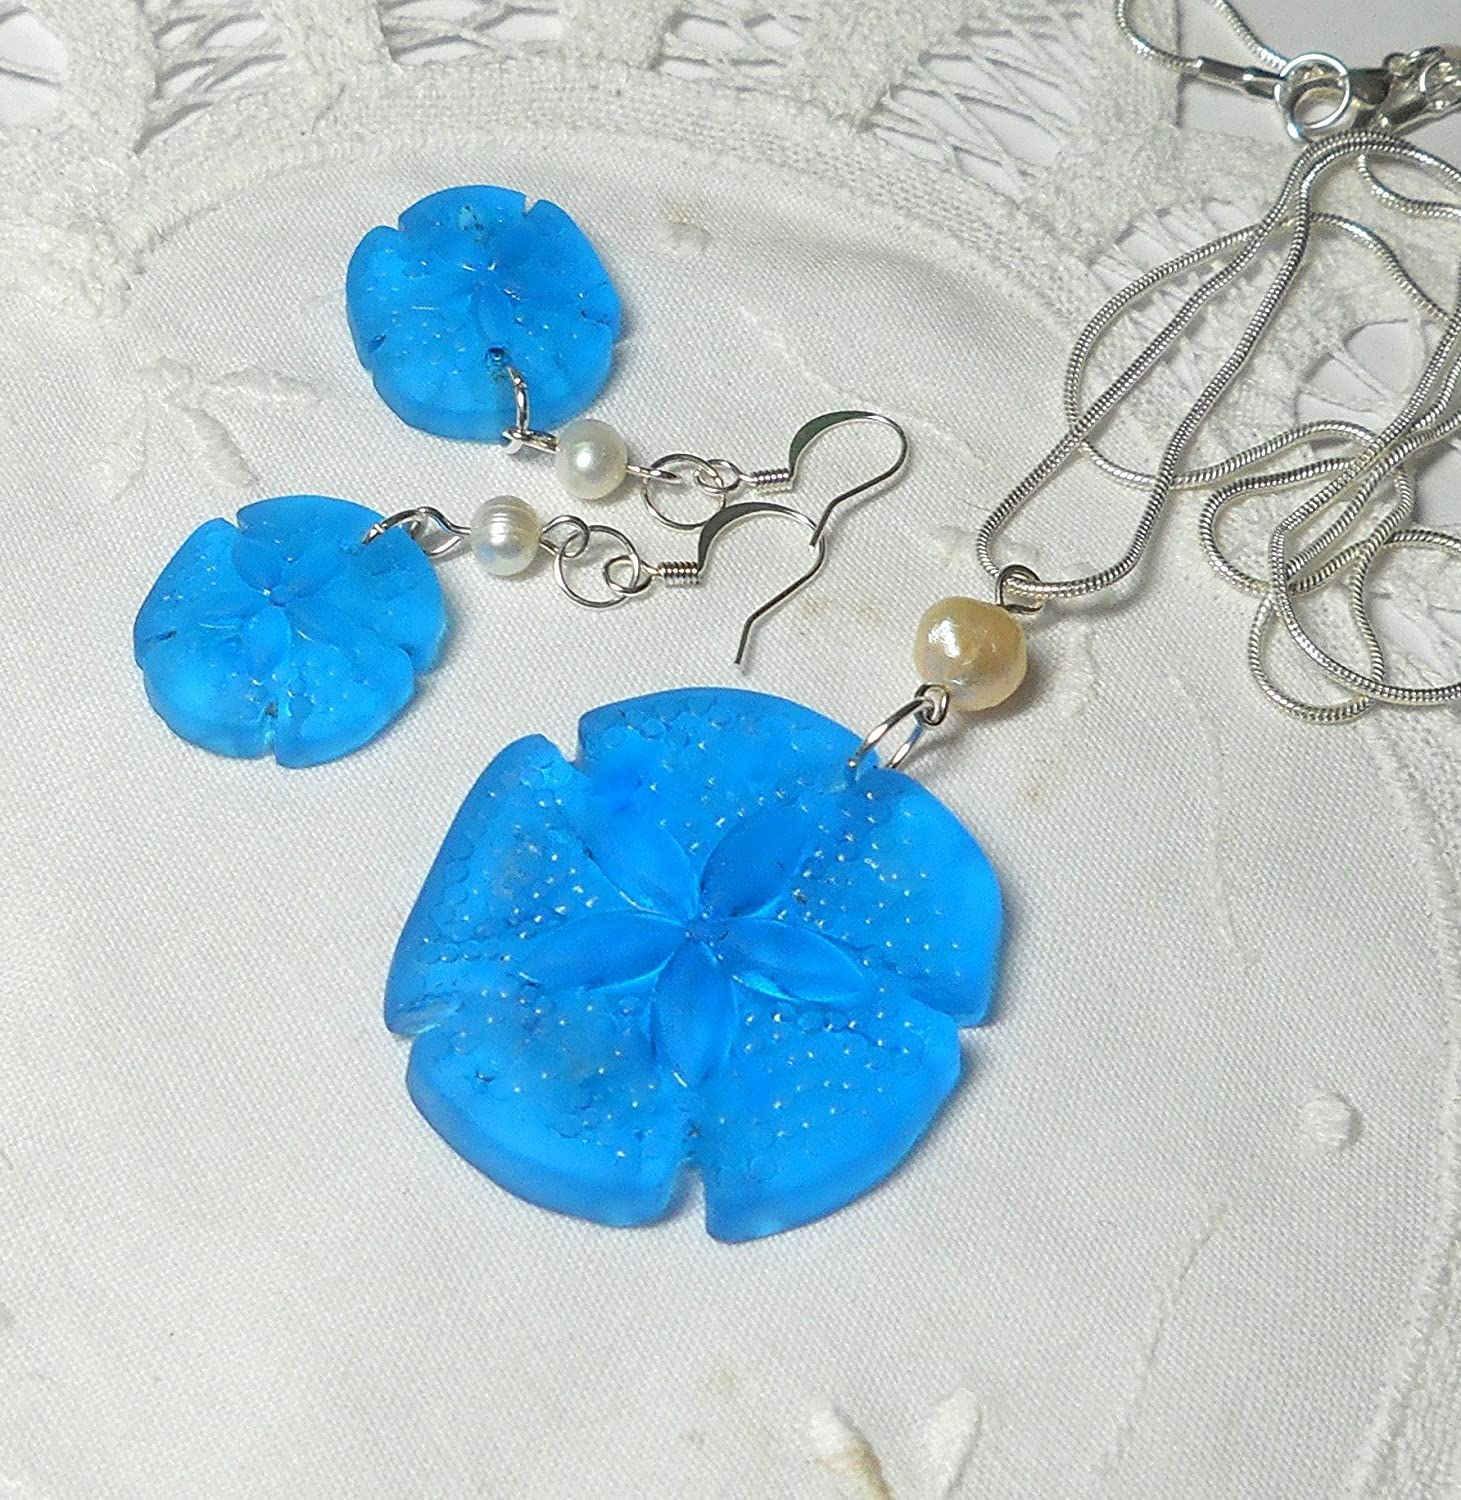 Light blue sea glass sand dollar pendant necklace and earrings set with pearls and silver by BethExpressions